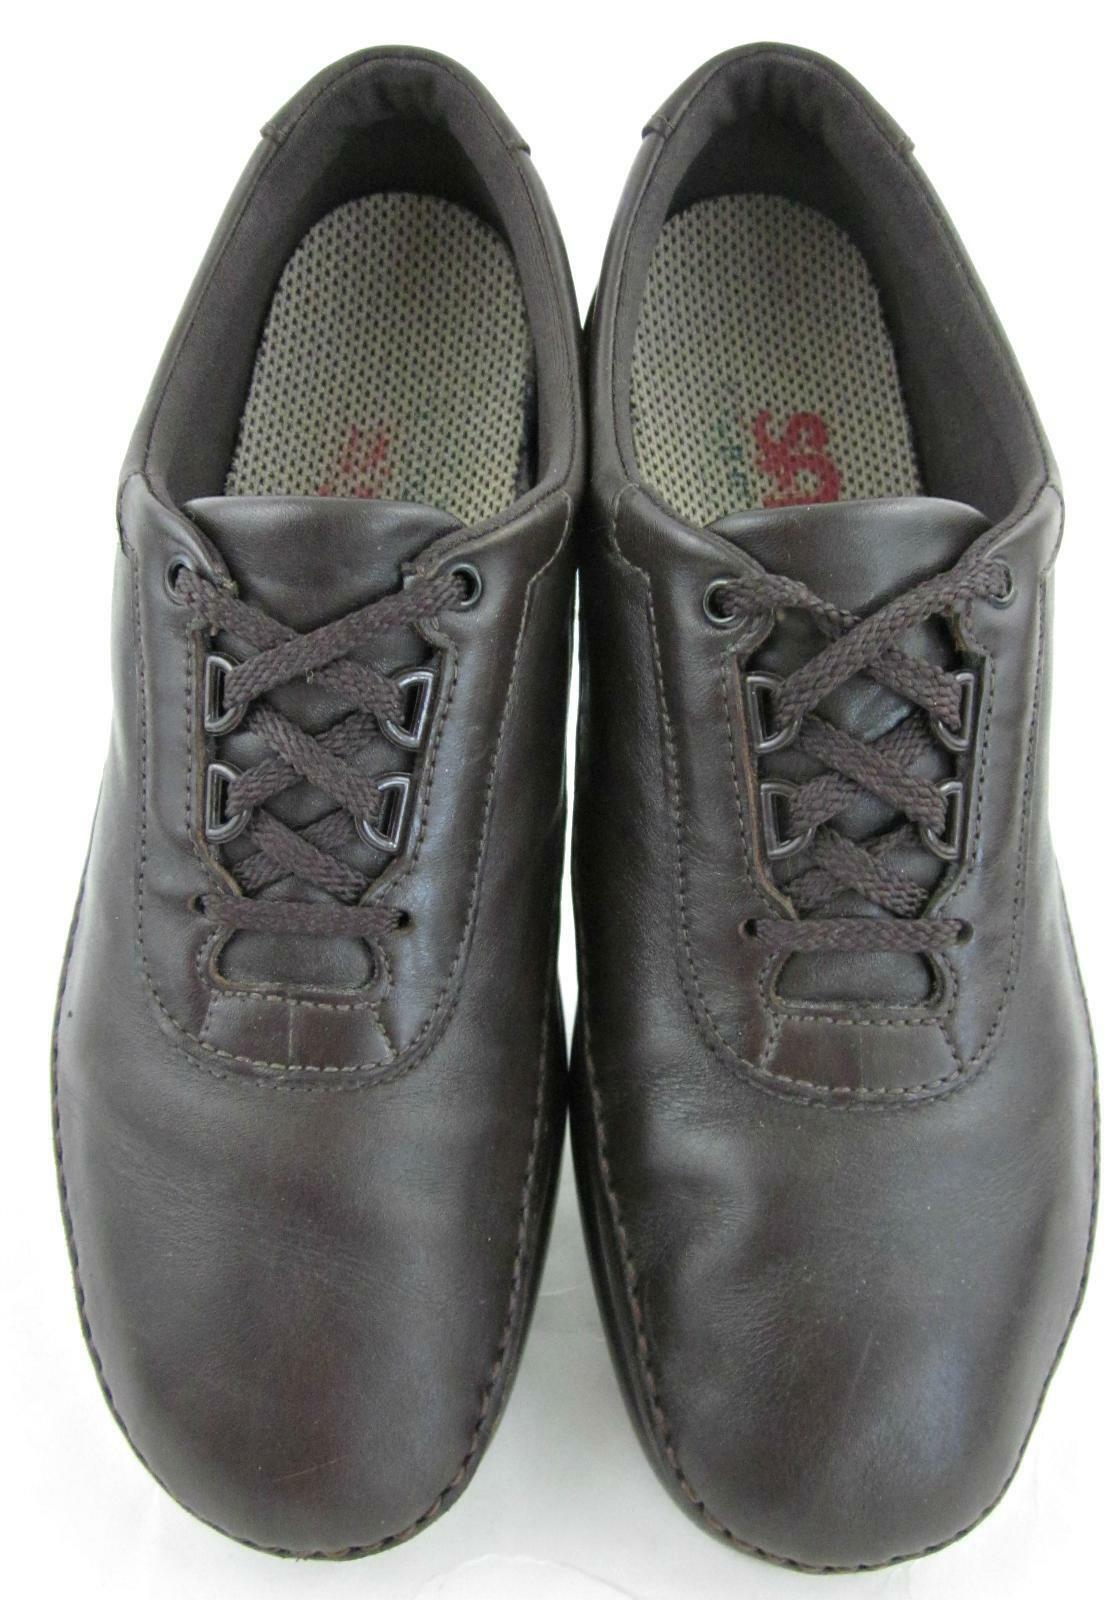 SAS 'Traveler' Damenschuhe Walking Schuhes US Braun Leder US Schuhes 8.5M 1f2b06